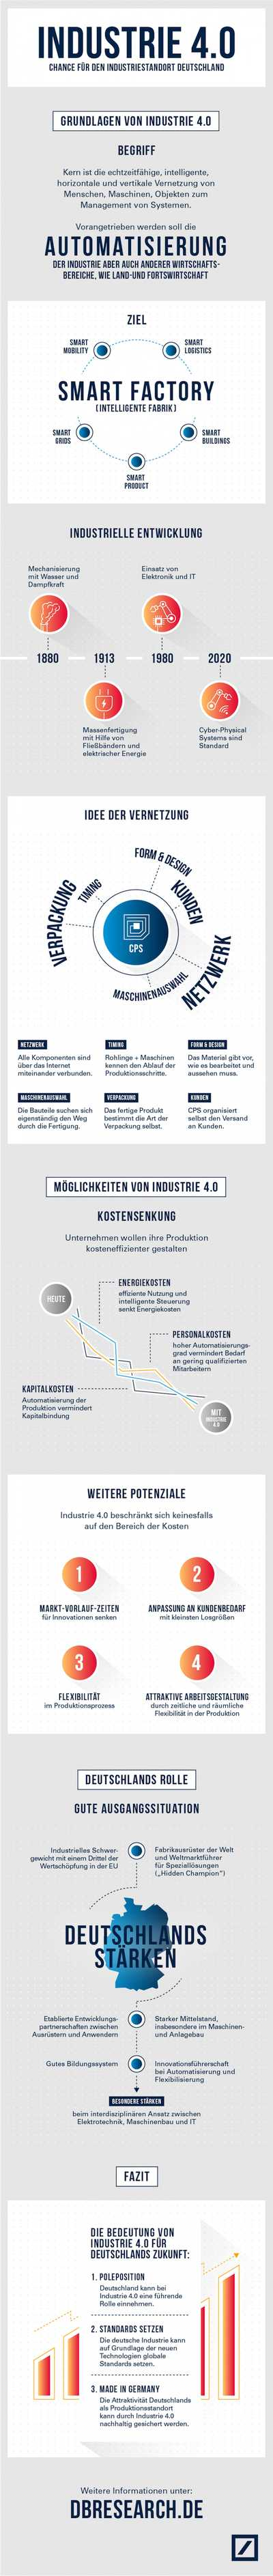 infografik industrie 40 dbresearch 400